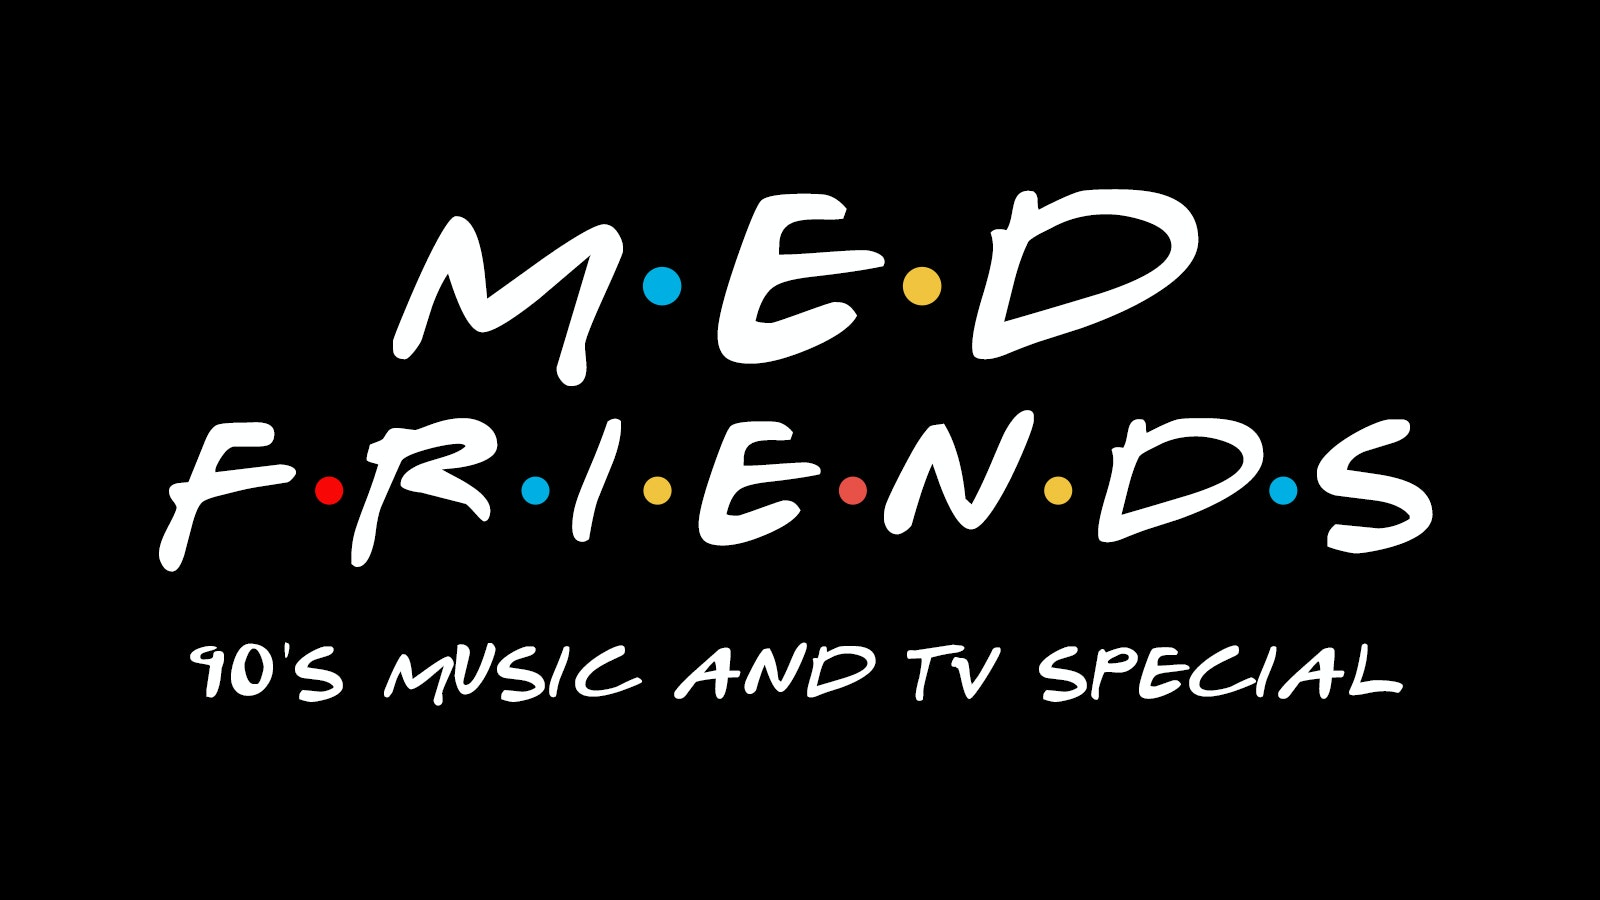 MEDICATION – FRIENDS 90'S SPECIAL